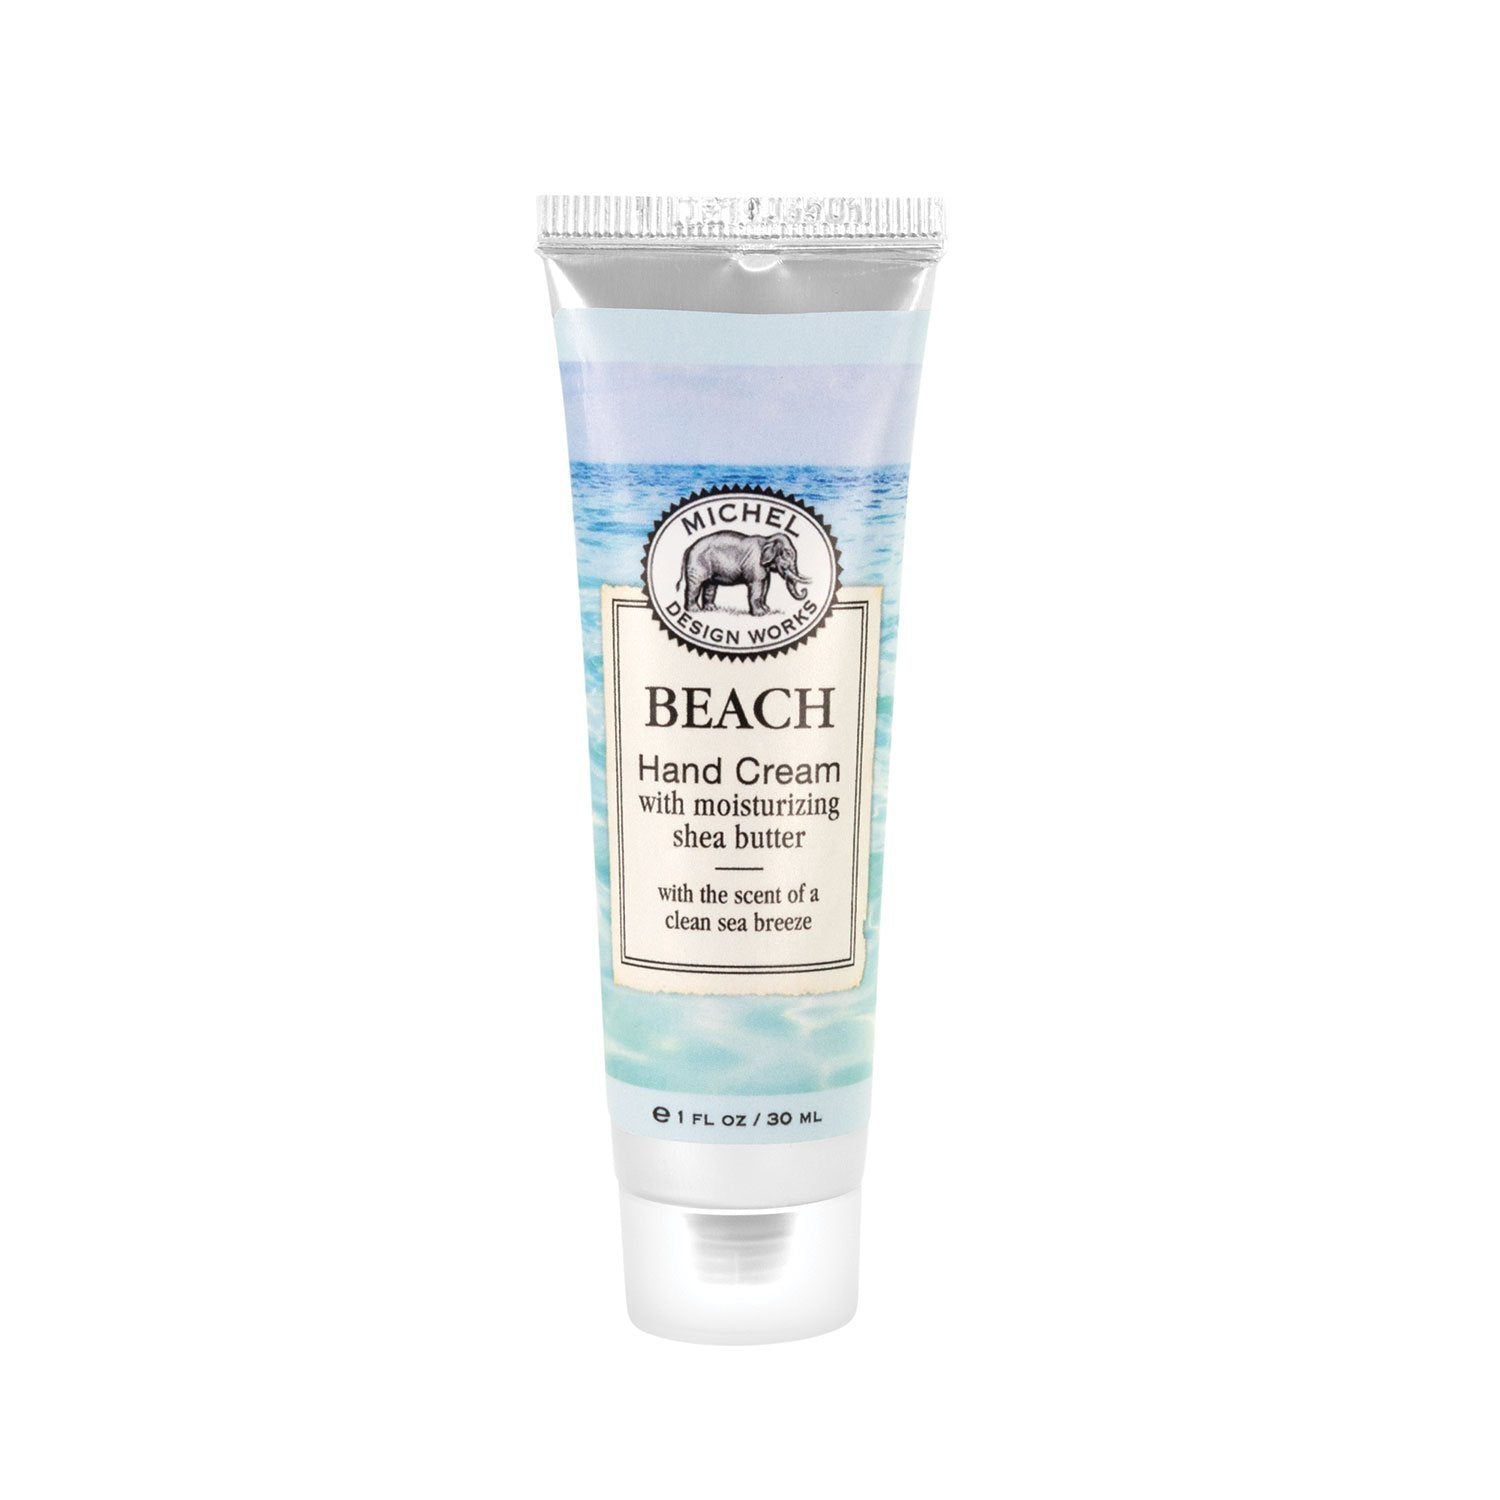 BEACH HAND CREAM HCS08 - Molly's! A Chic and Unique Boutique